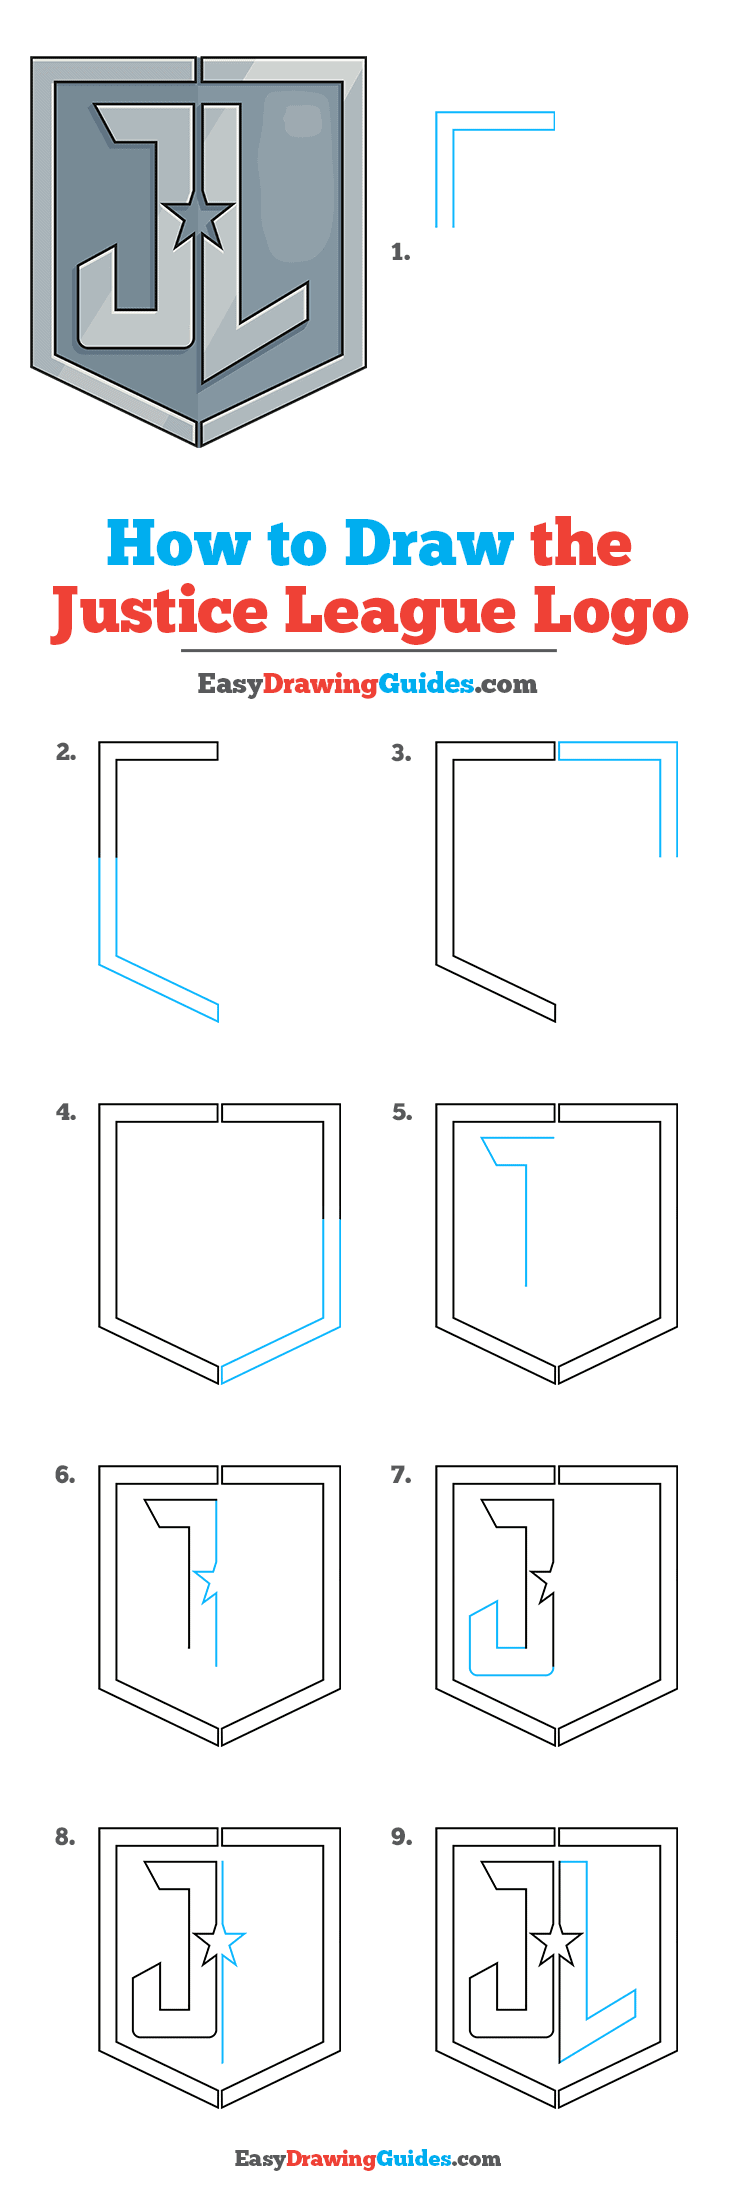 How to Draw the Justice League Logo Step by Step Tutorial Image